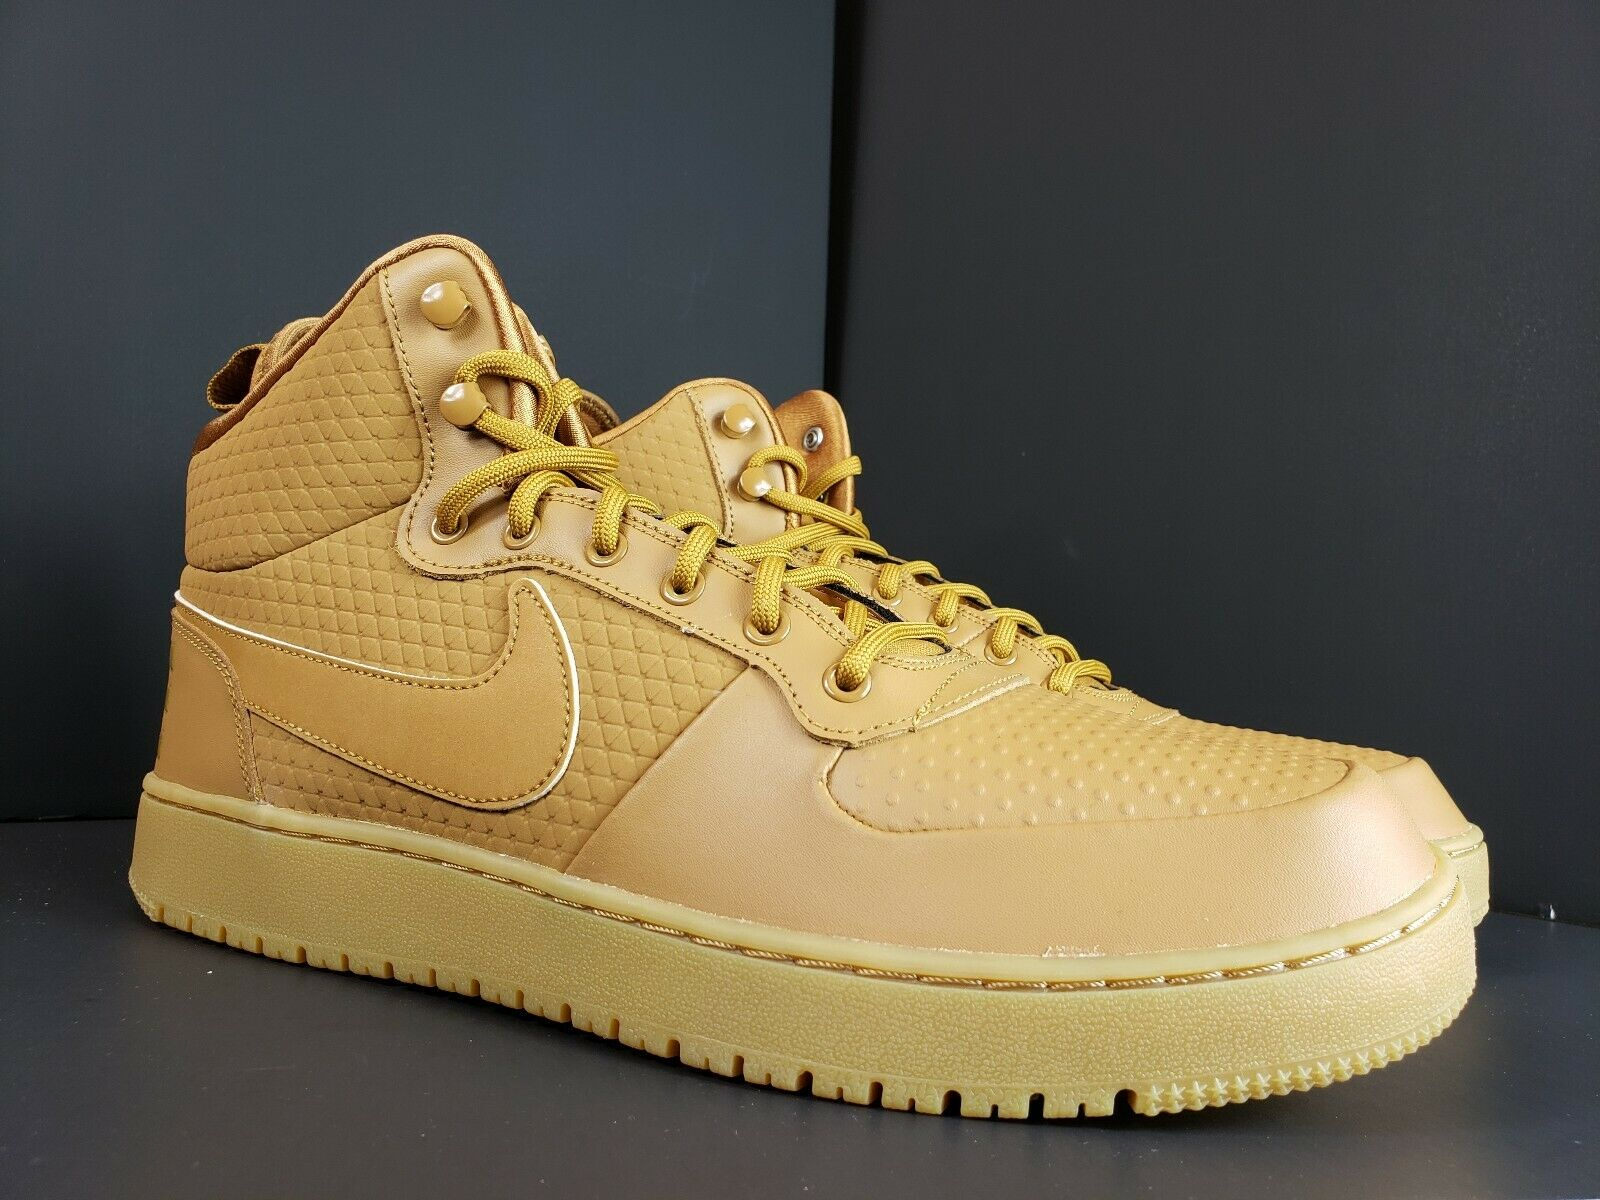 Men's Nike Court Bgoldugh Mid Winter Item Number AA0547-700 Size 12 Wheat